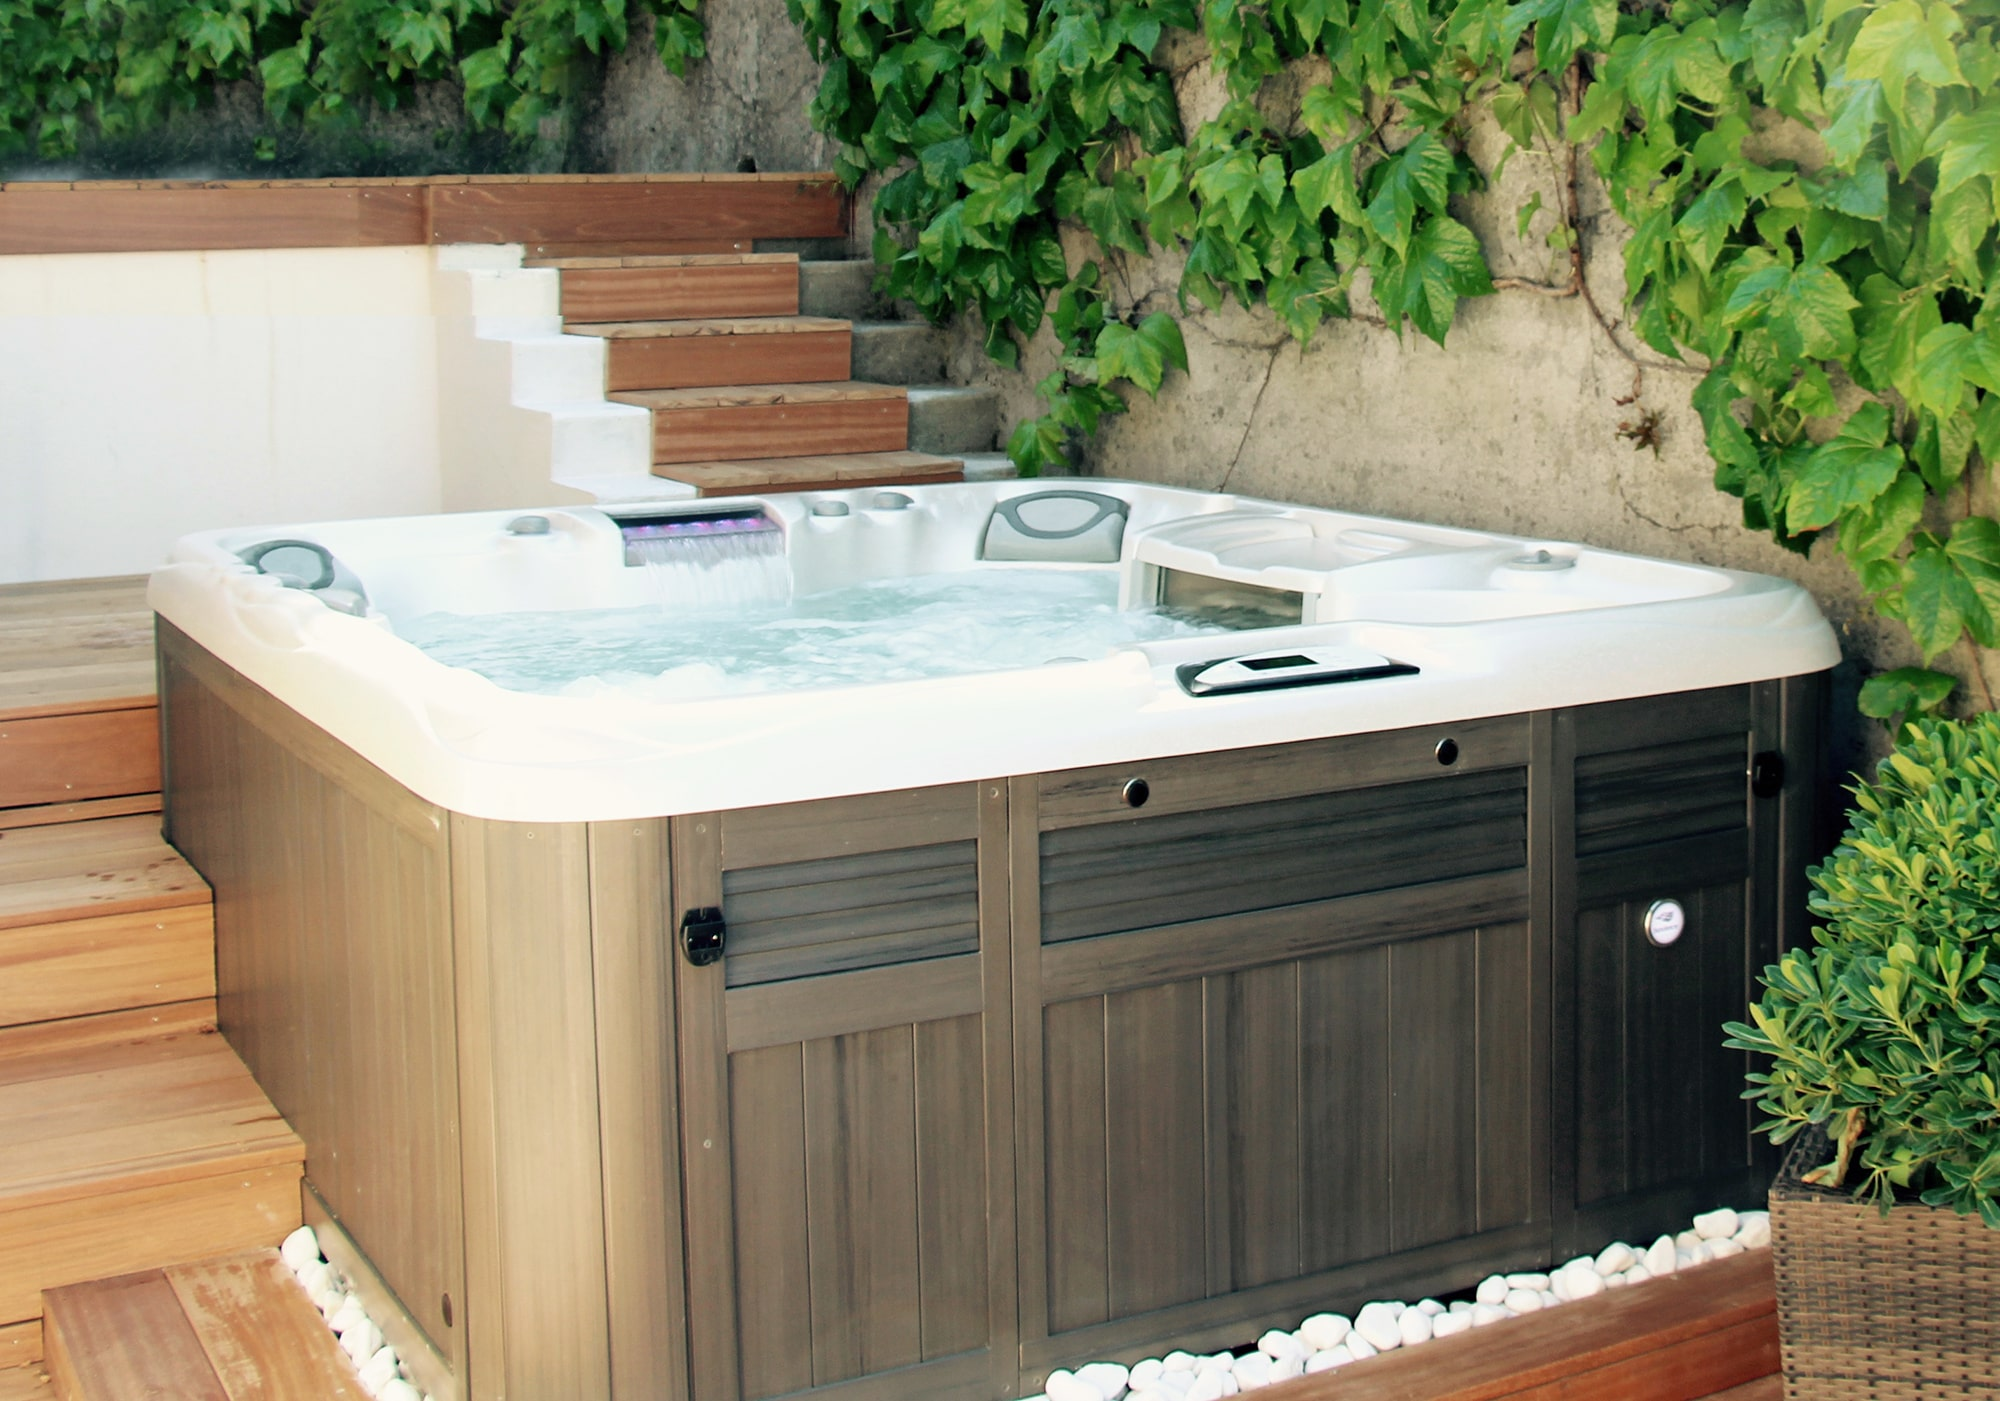 Sundance Spa hot tub Installation